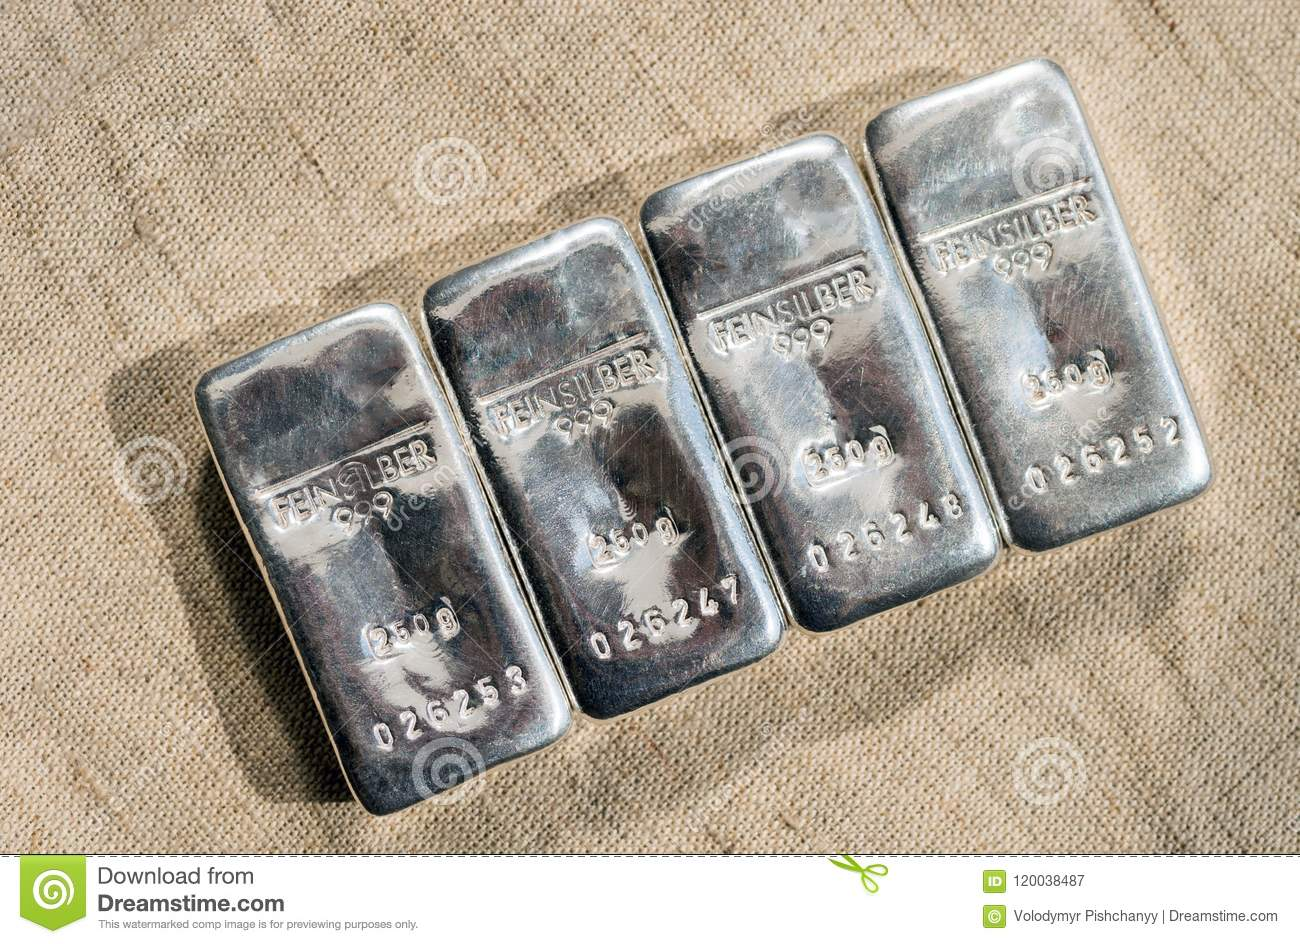 Four cast silver bars against the background of the texture of coarse cloth